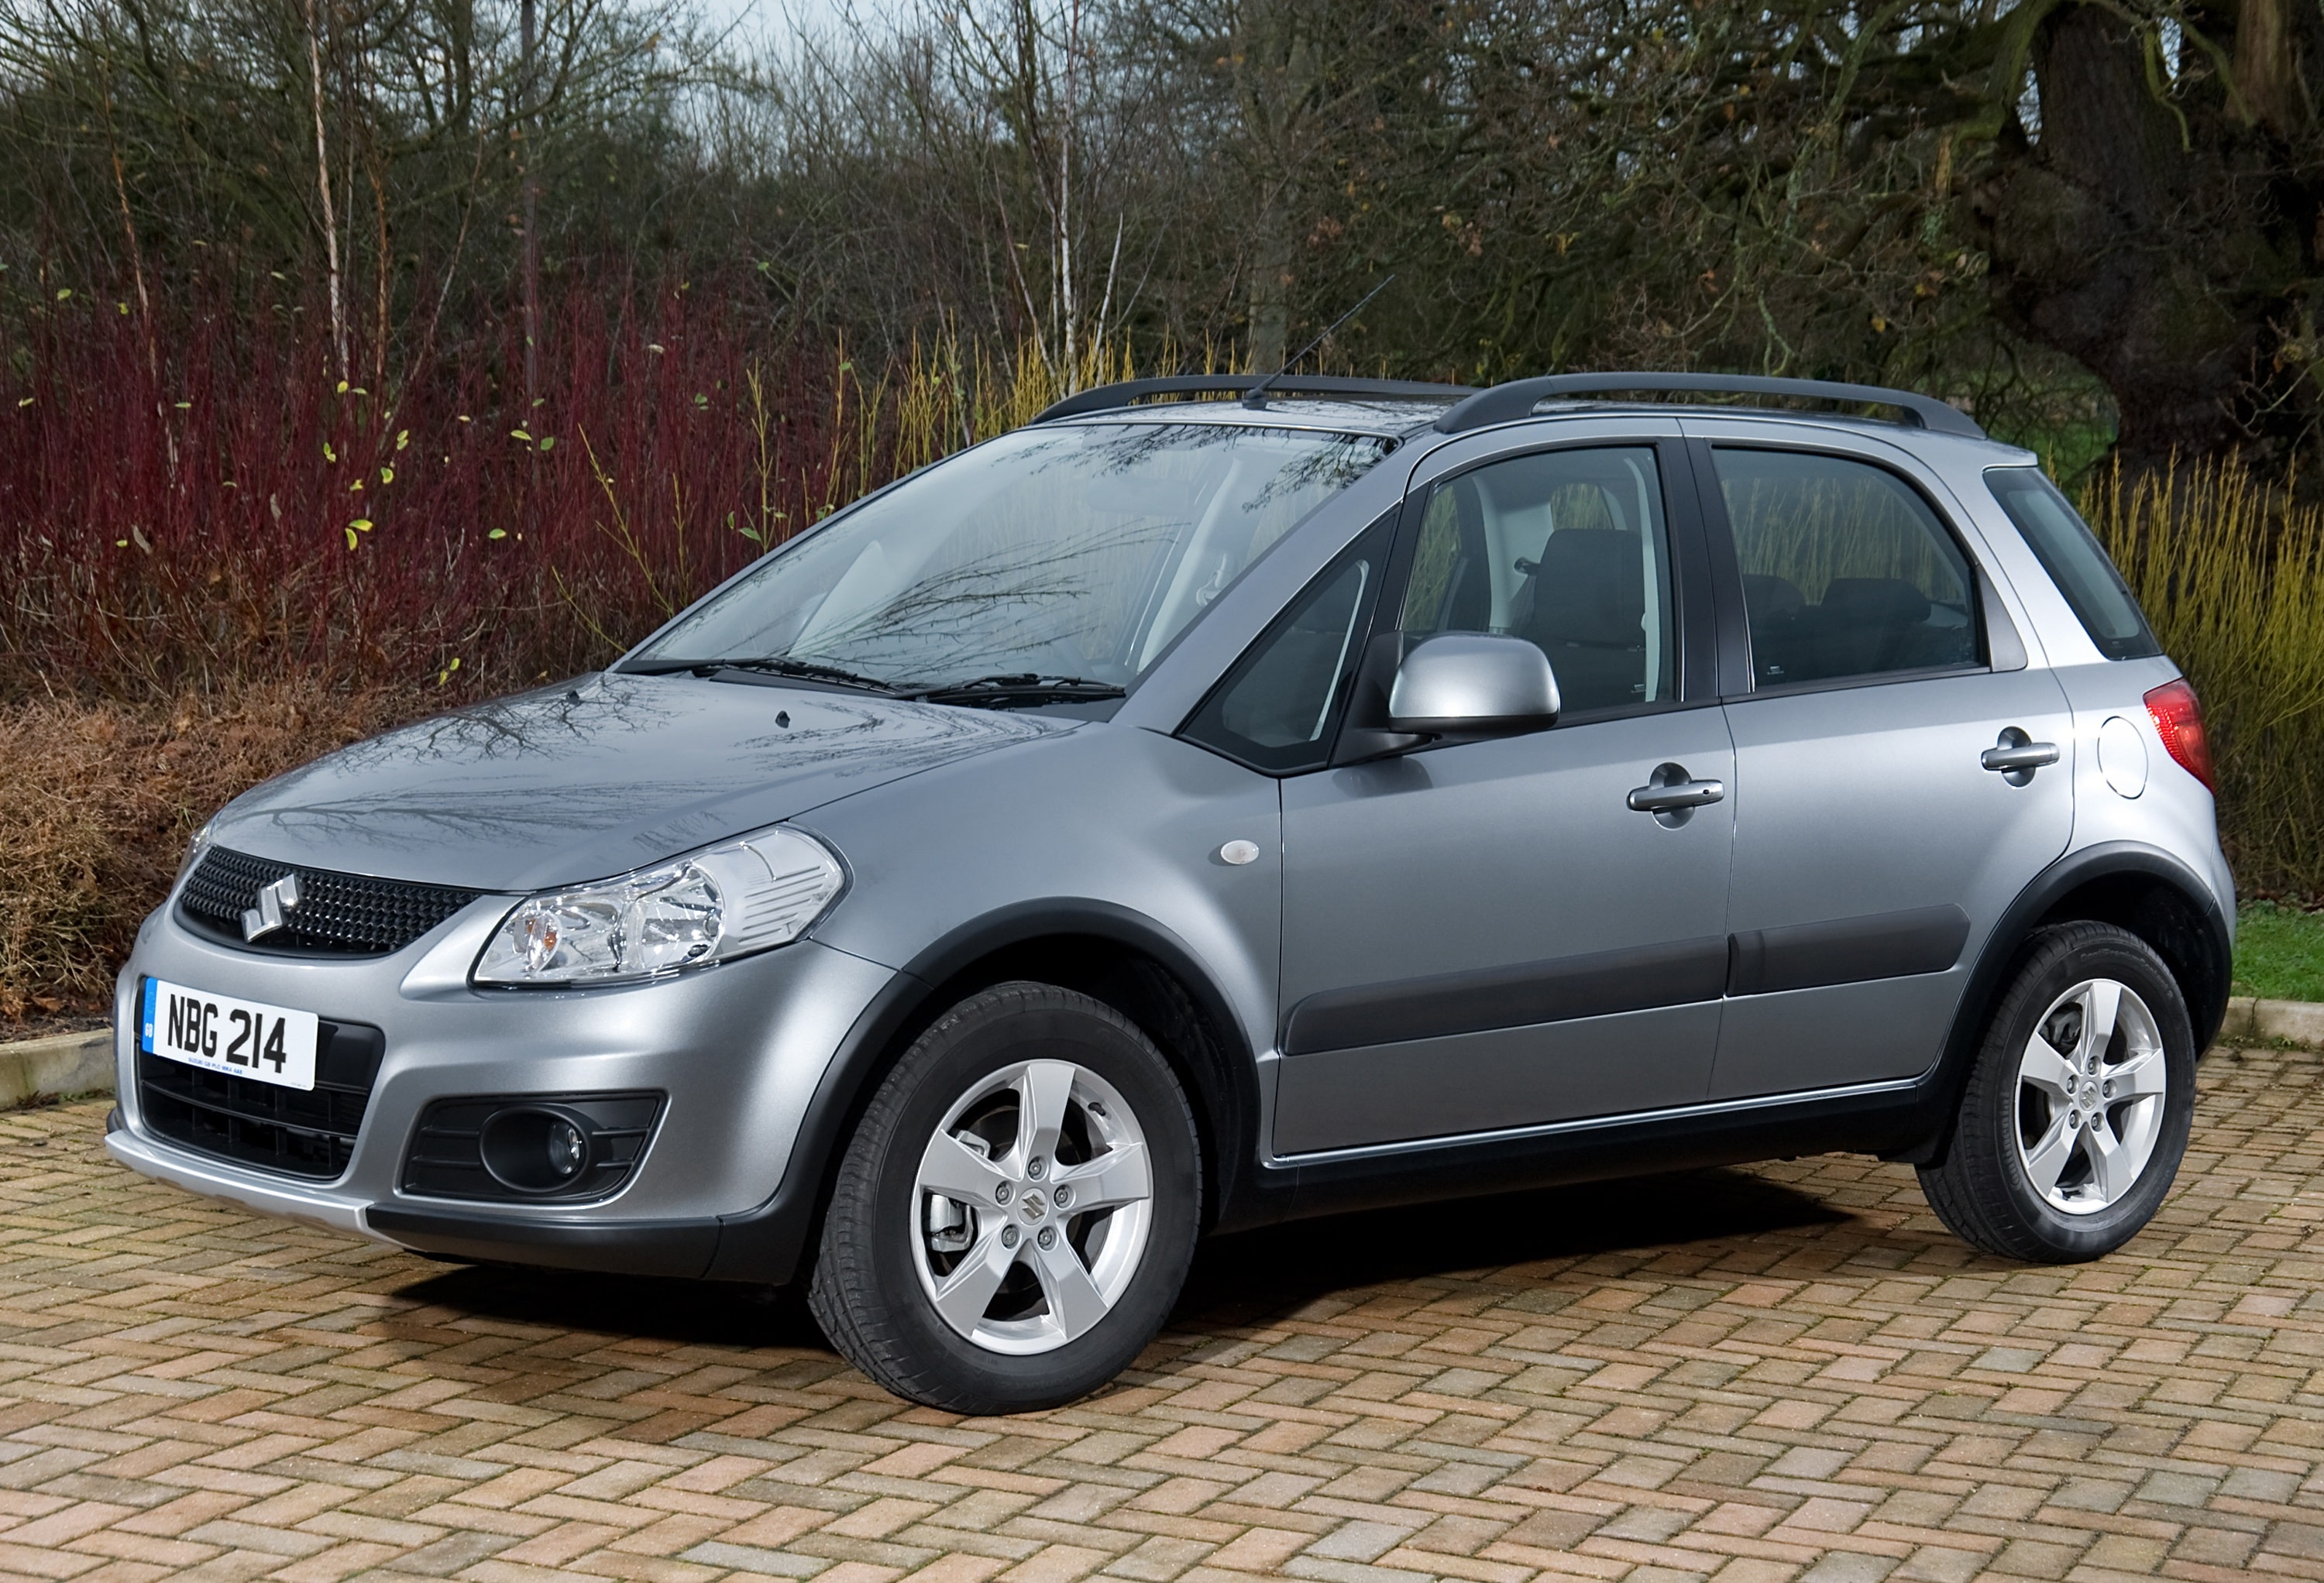 Suzuki, SX4, 4x4, Suzuki SX4, Vitara, Suzuki Vitara, off road, family car, crossover, SUV, buying guide, motoring, automotive, cars, classic ca, retro car, cheap car, car sales, not2grand, www.not2grand.co.uk, car, cars, motoring, featured